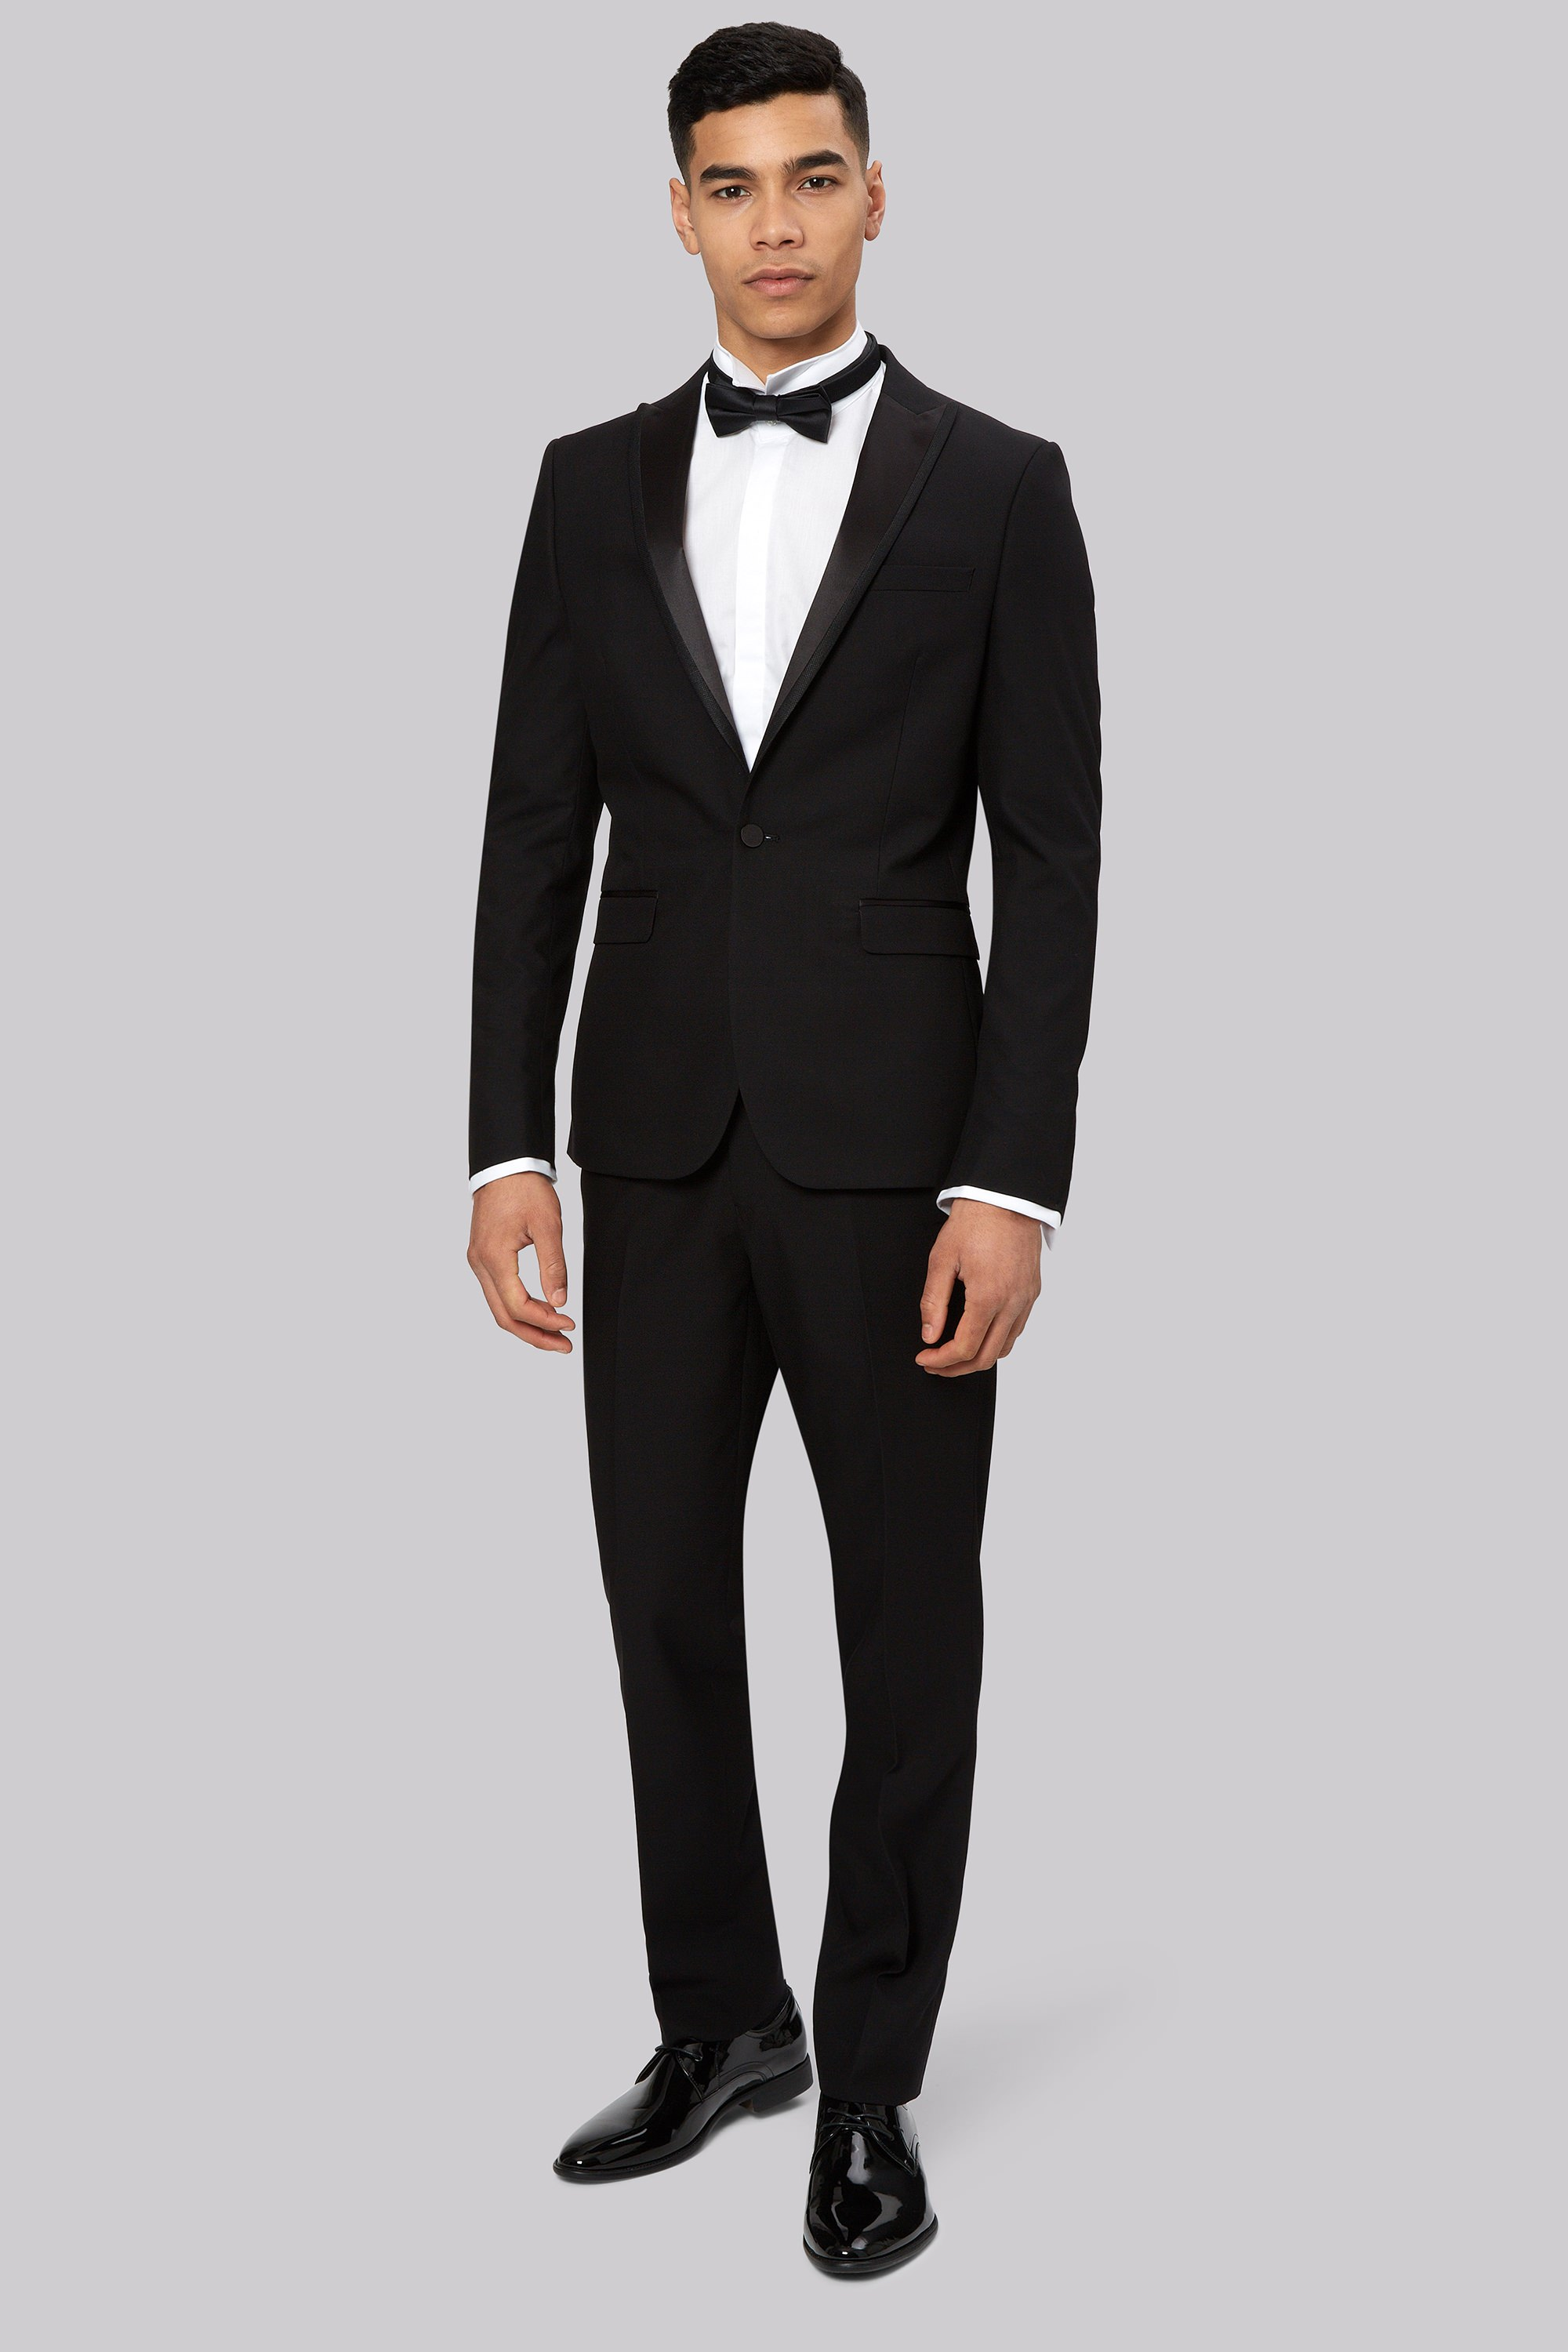 London Skinny Fit Black Tuxedo Jacket